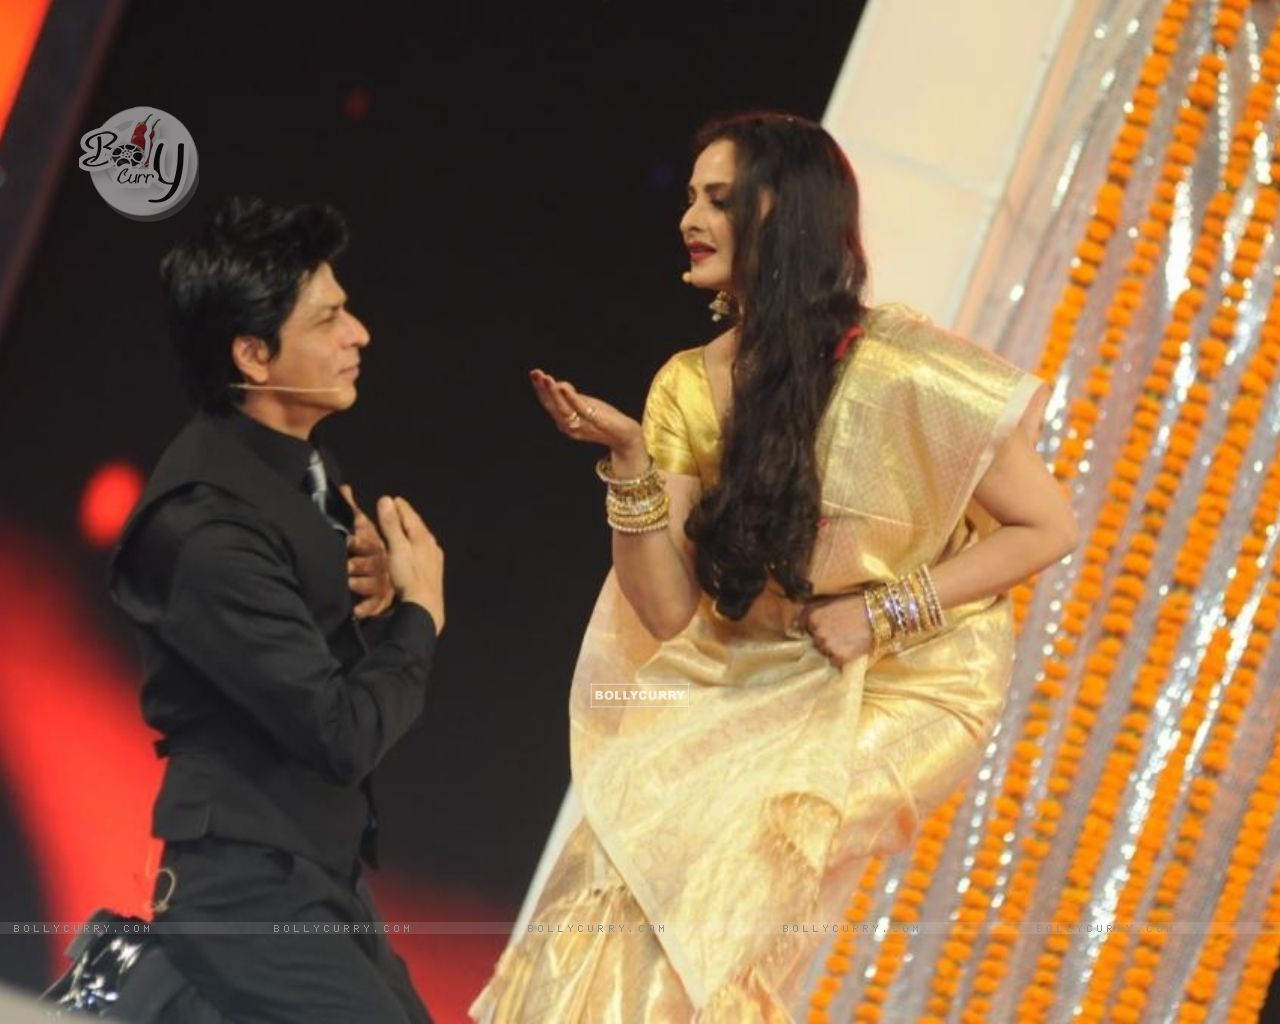 http://img.bollycurry.com/wallpapers/1280x1024/116311-srk-and-rekha-in-a-performance-on-17th-annual-star-screen-award.jpg